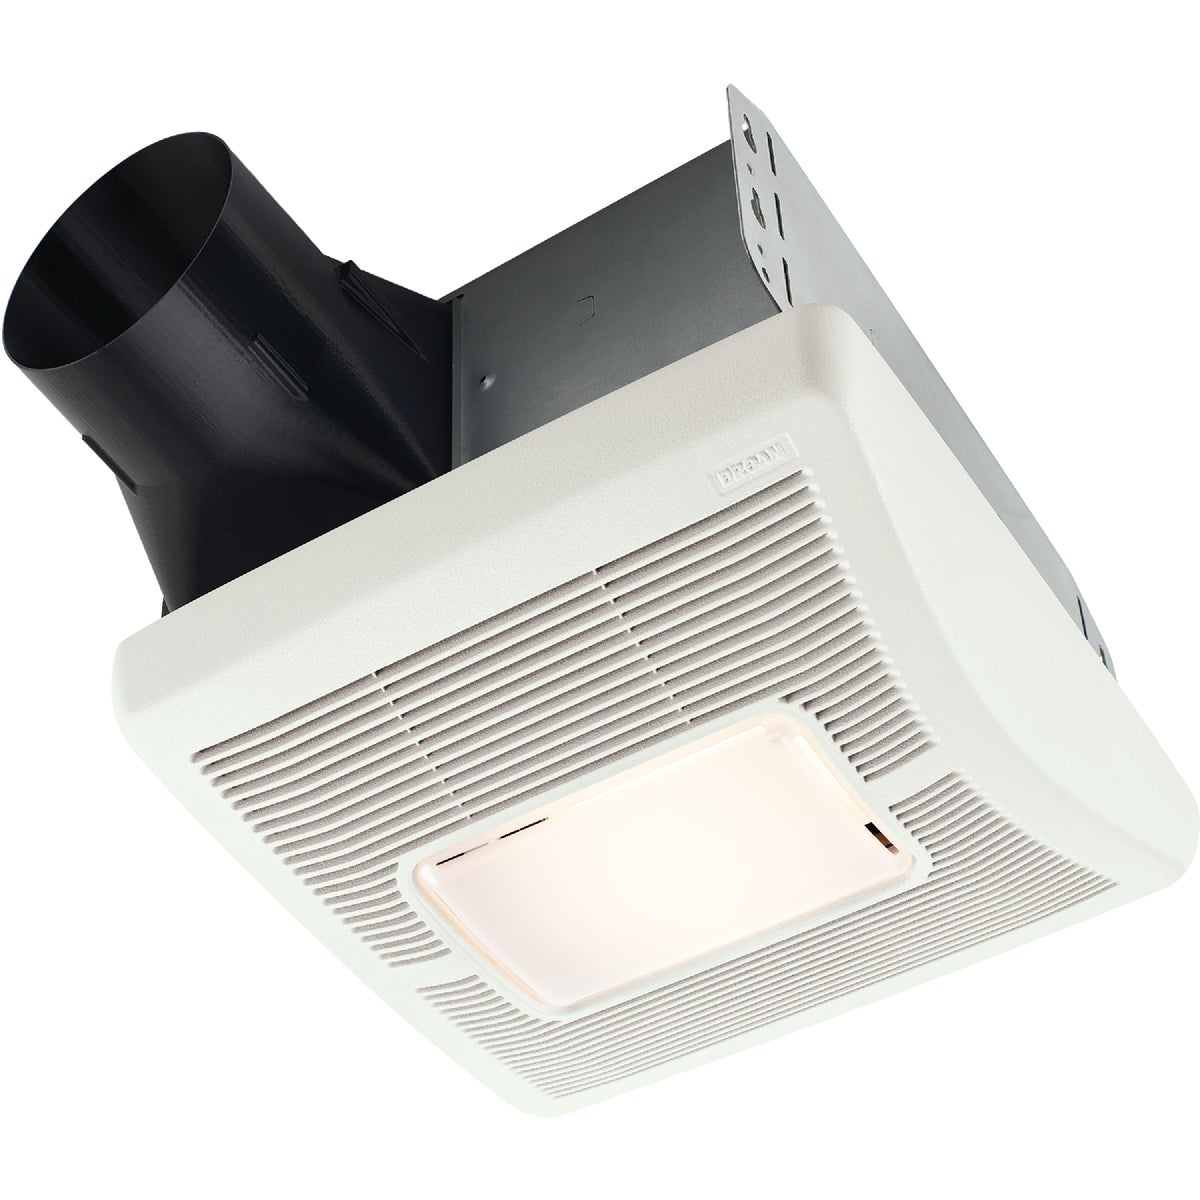 BATH EXHAUST FAN - QTR110L by Broan Nutone